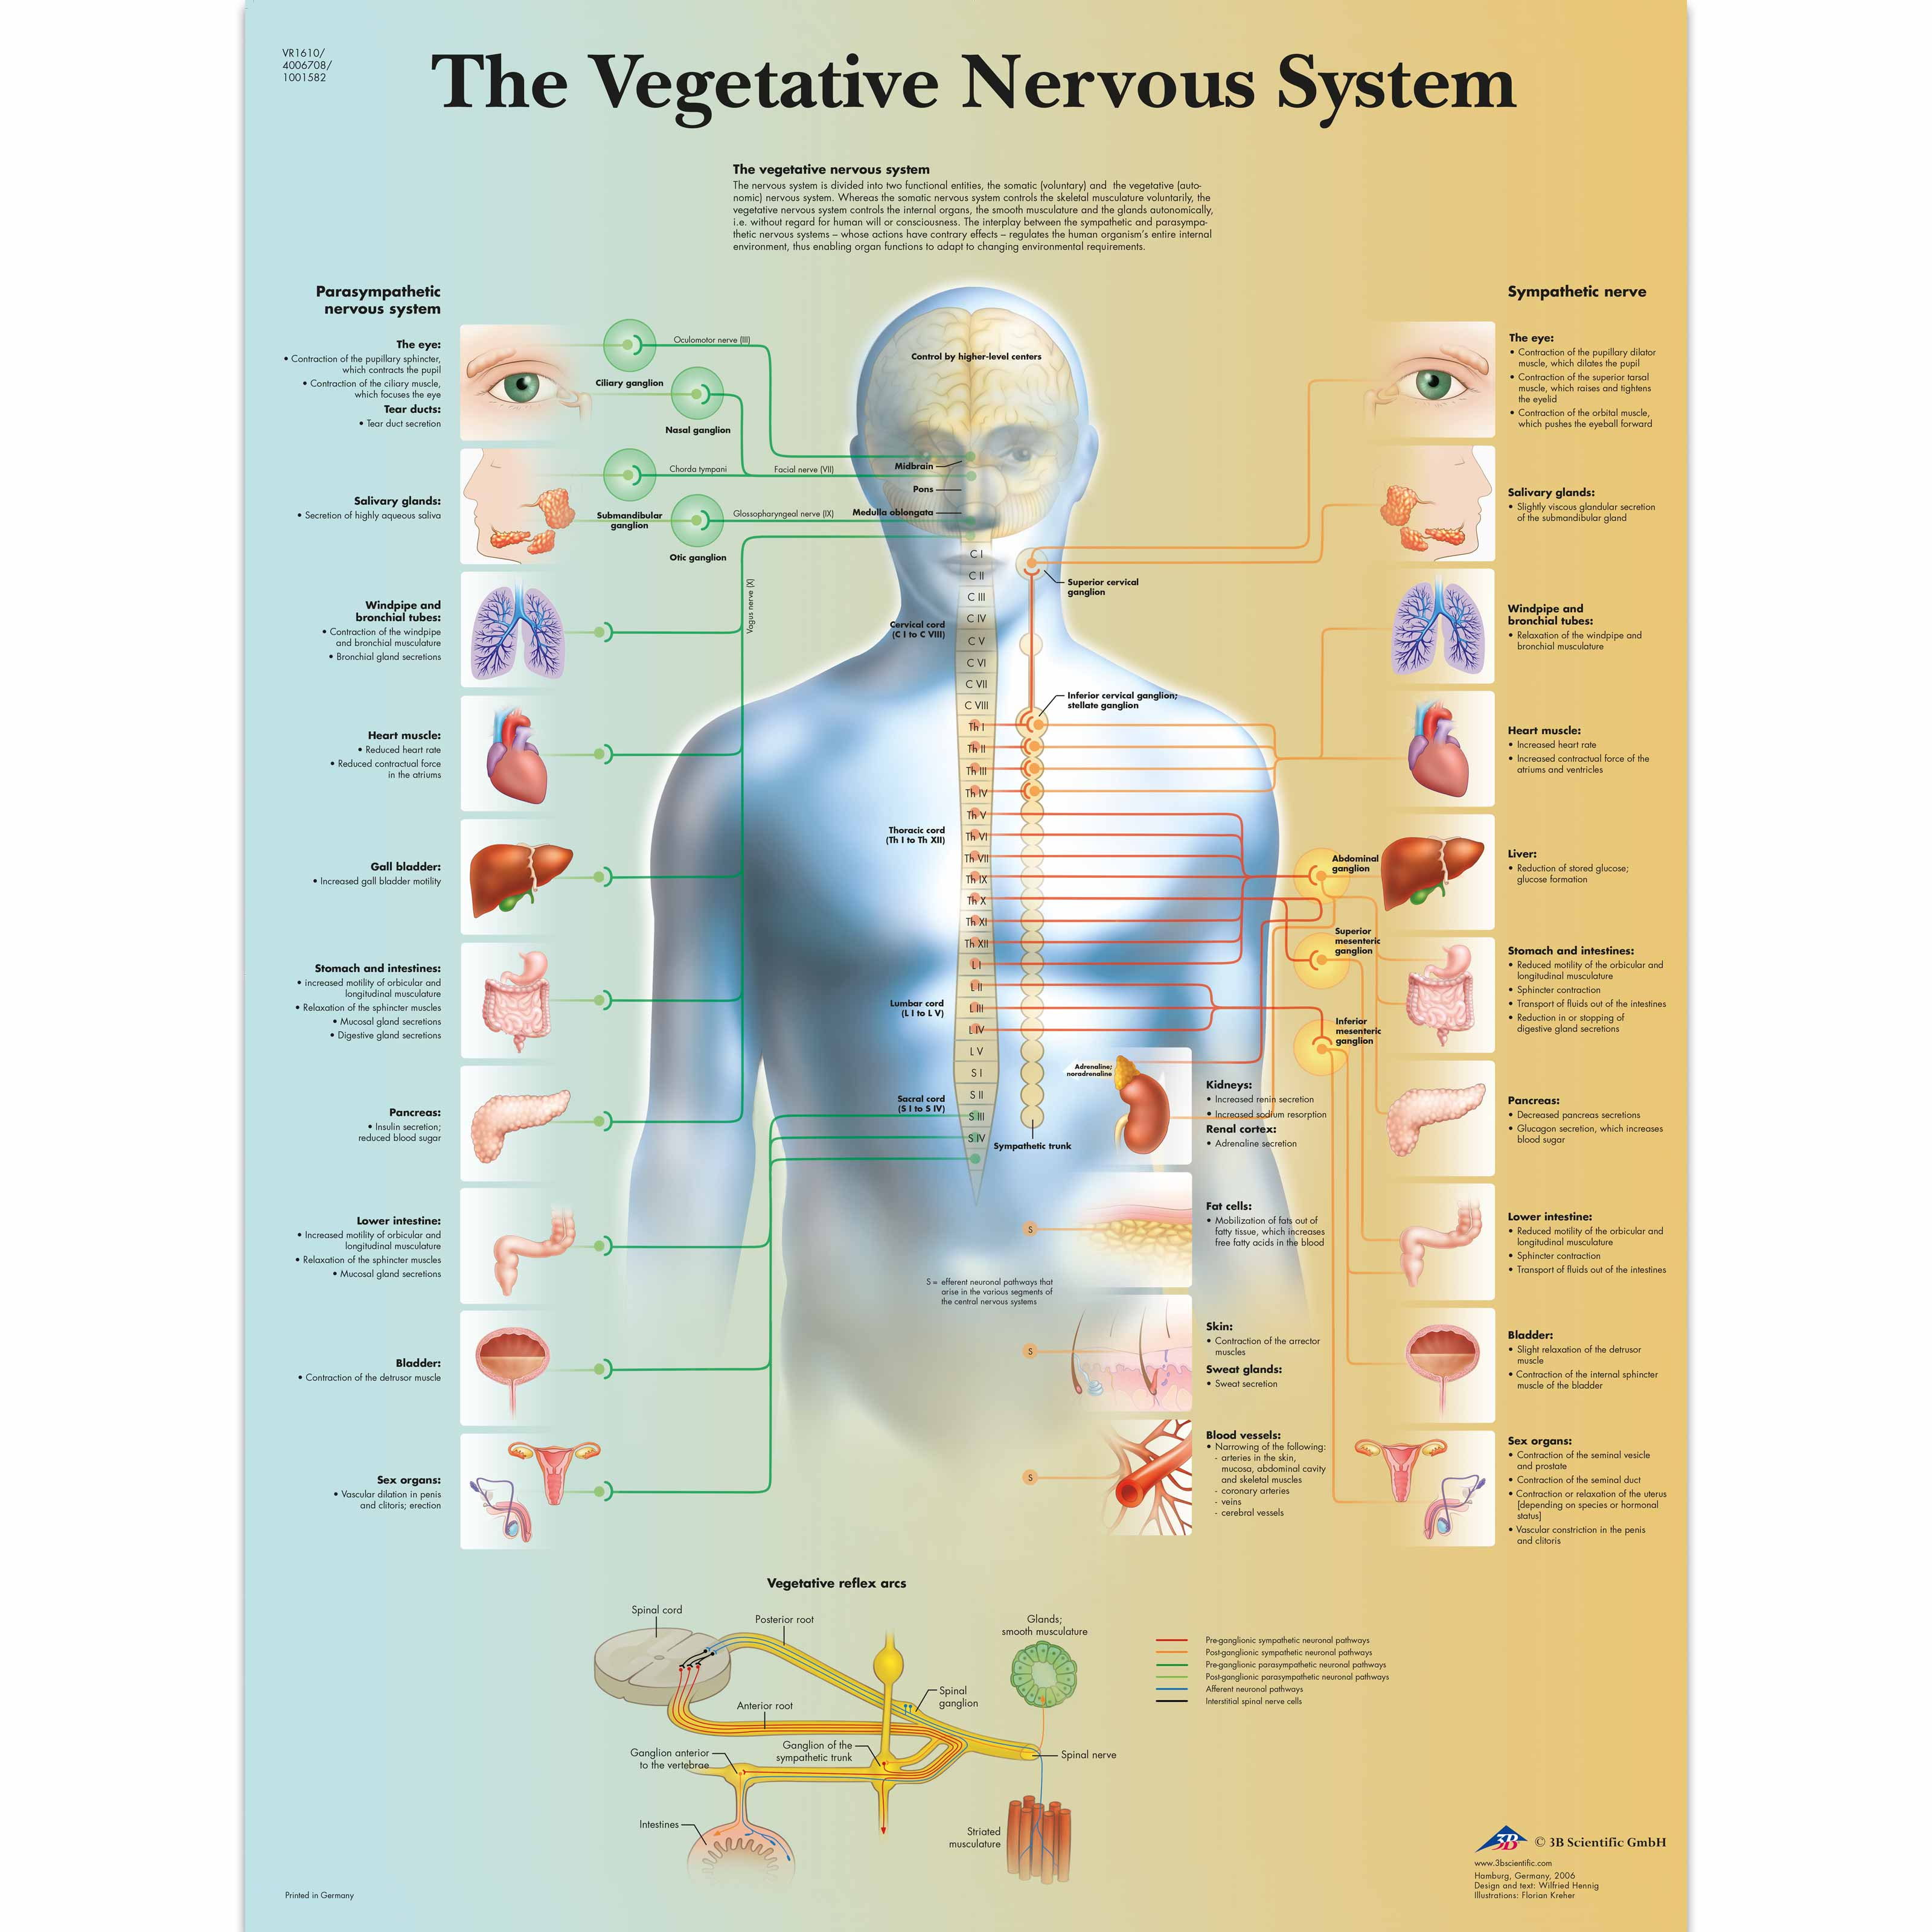 nervous system charts - People.davidjoel.co